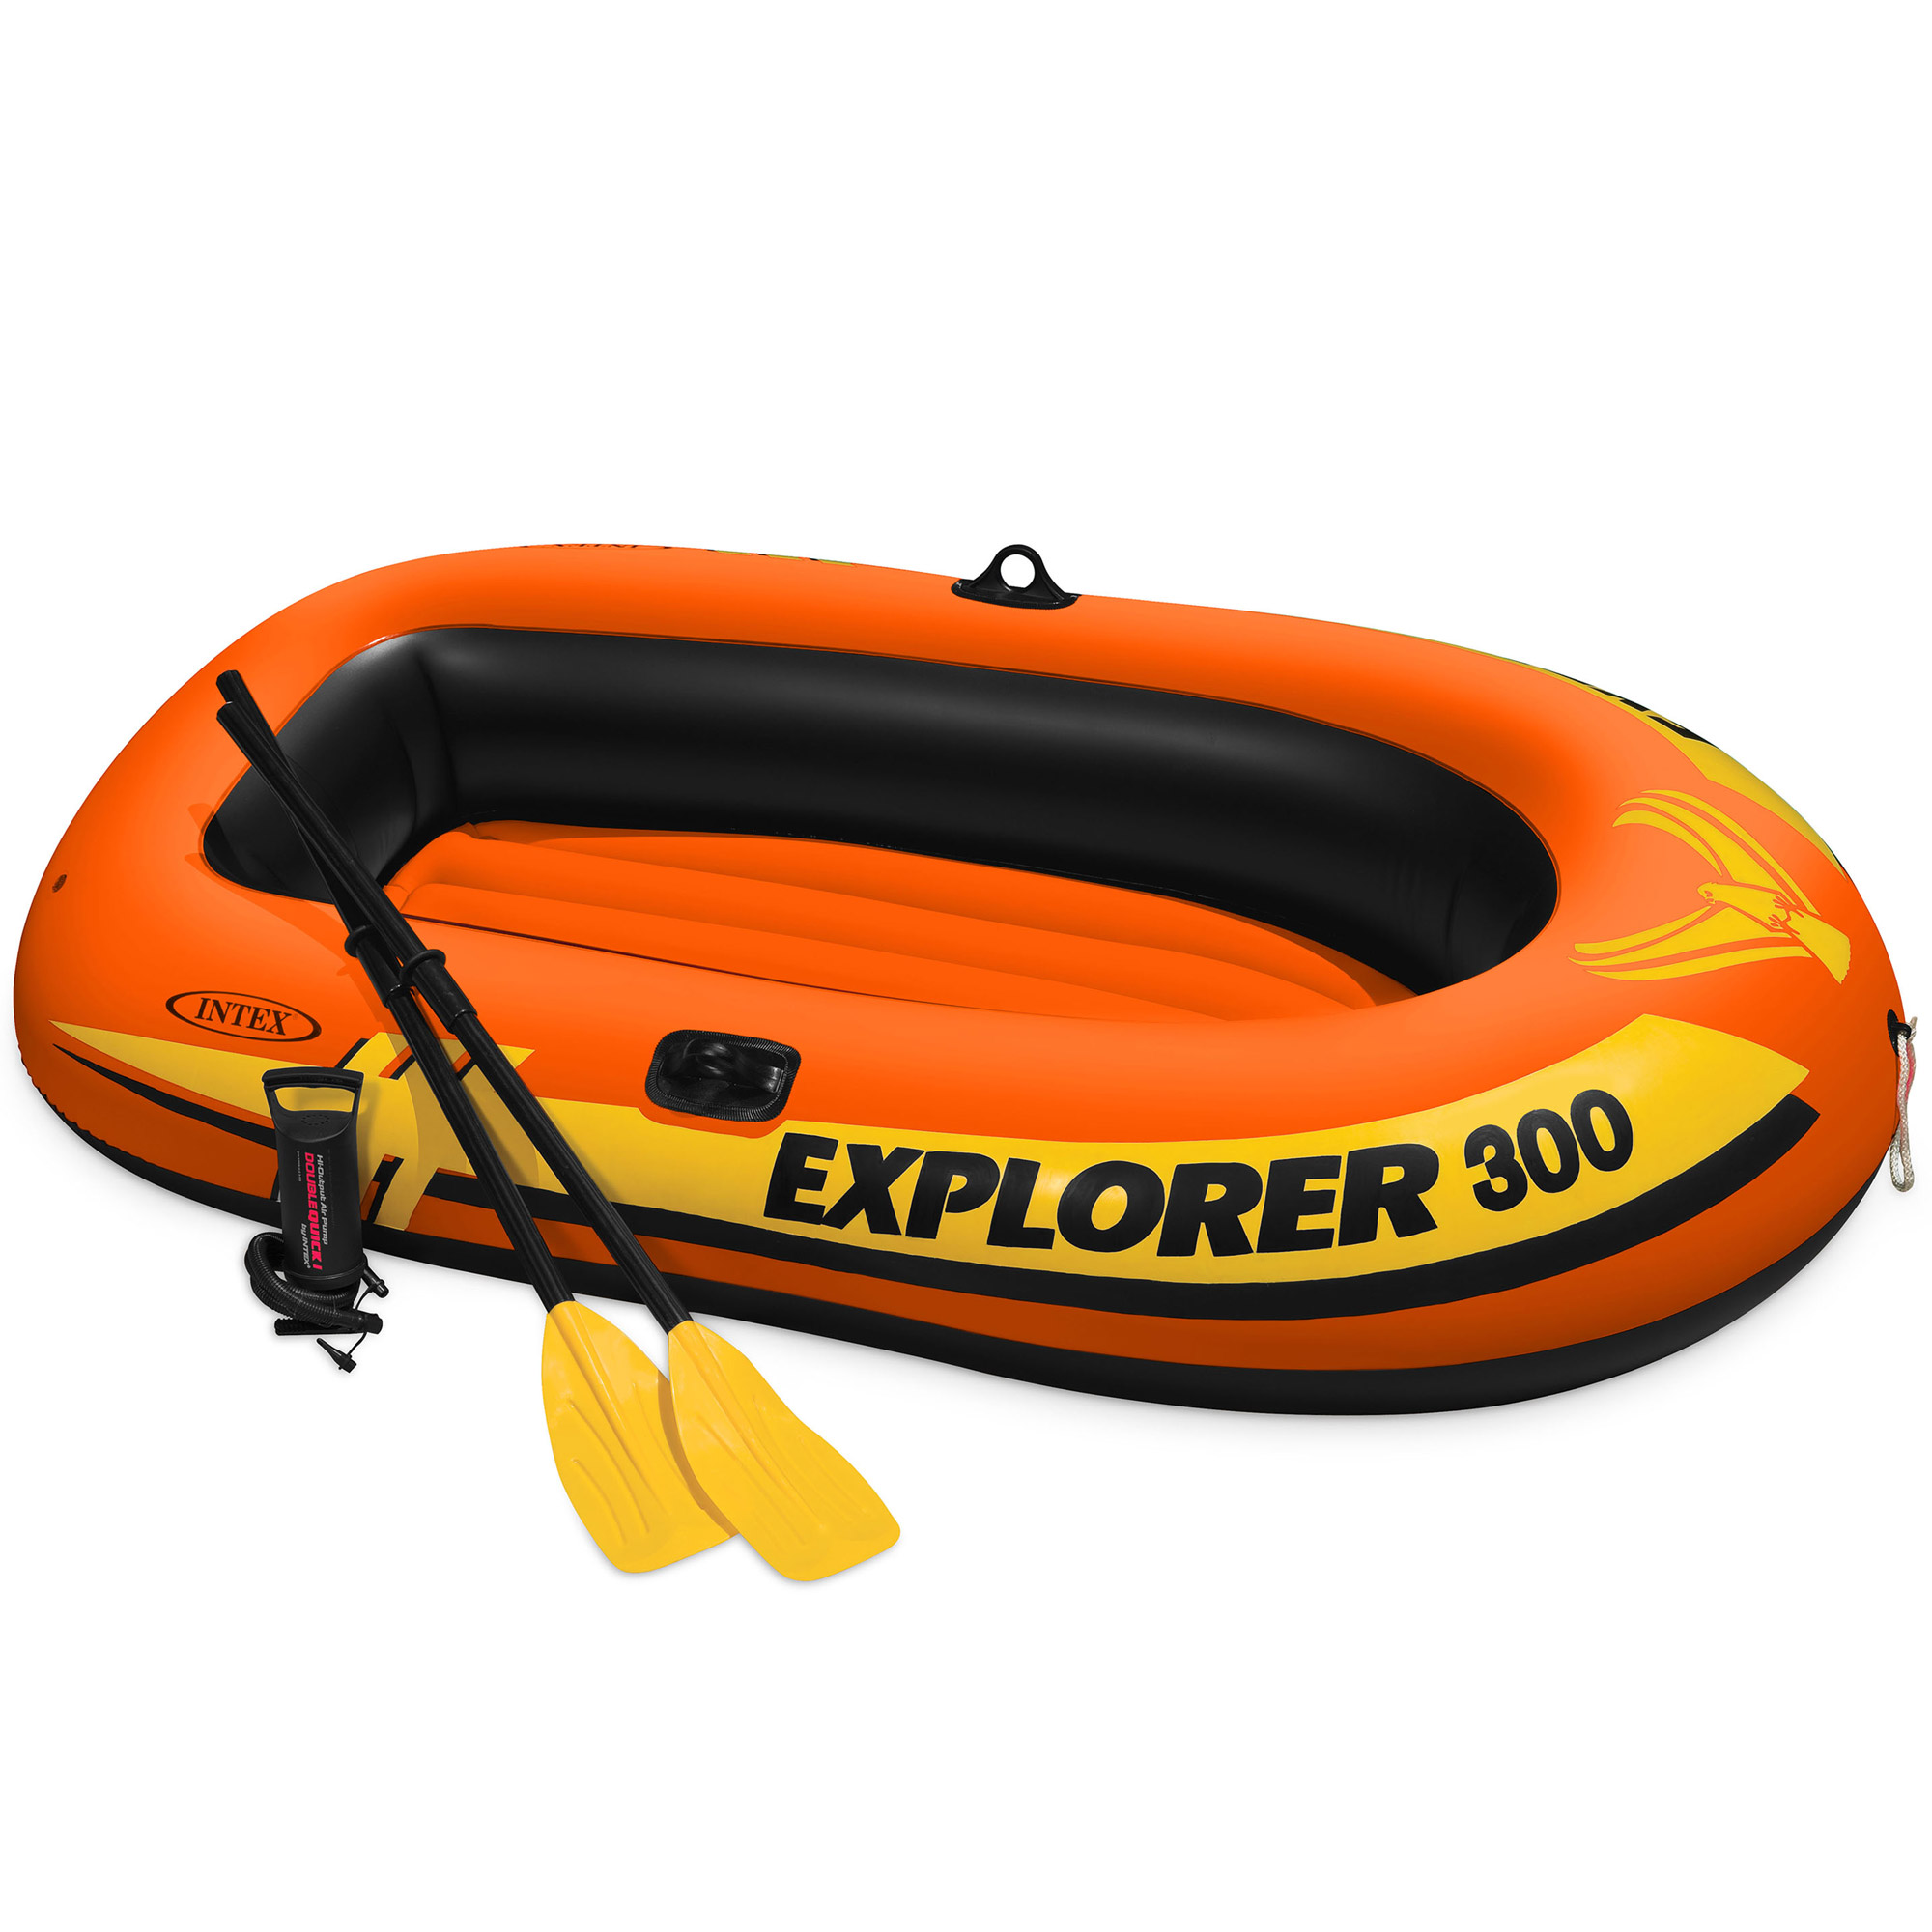 Intex Explorer 300 Compact Inflatable Fishing 3 Person Raft Boat w